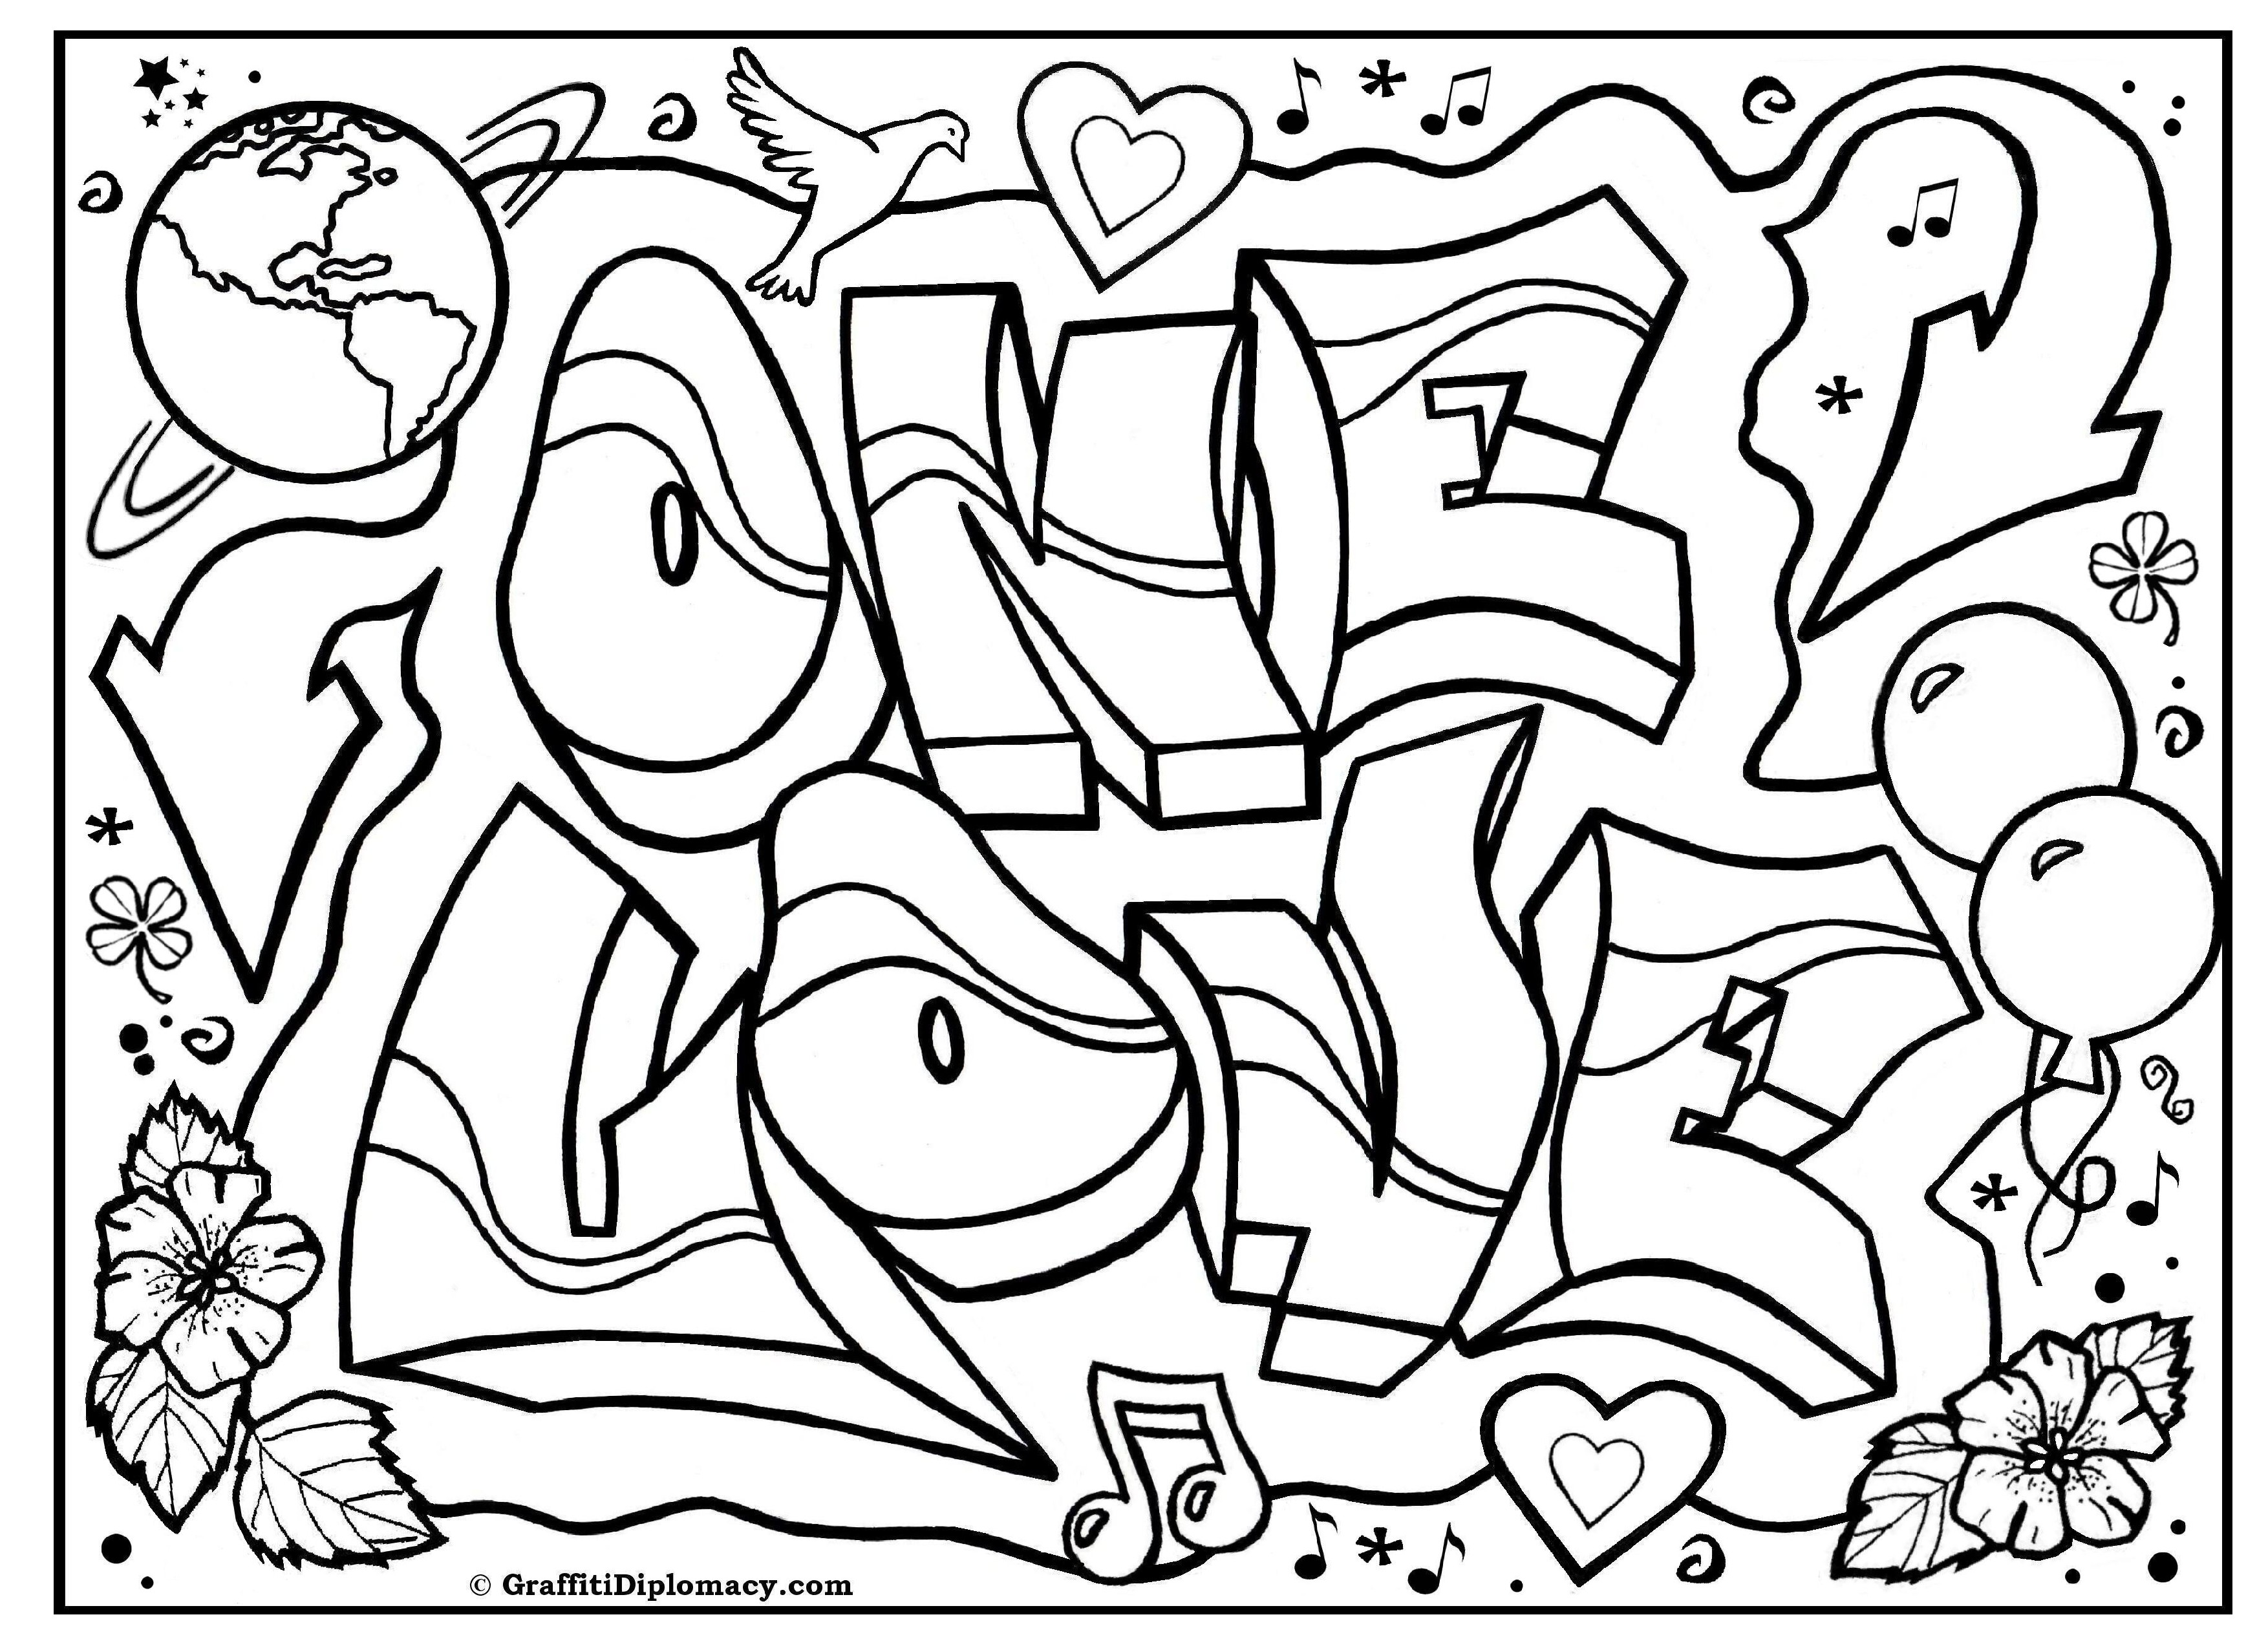 3508x2552 Omg! Another Graffiti Coloring Book Of Room Signs